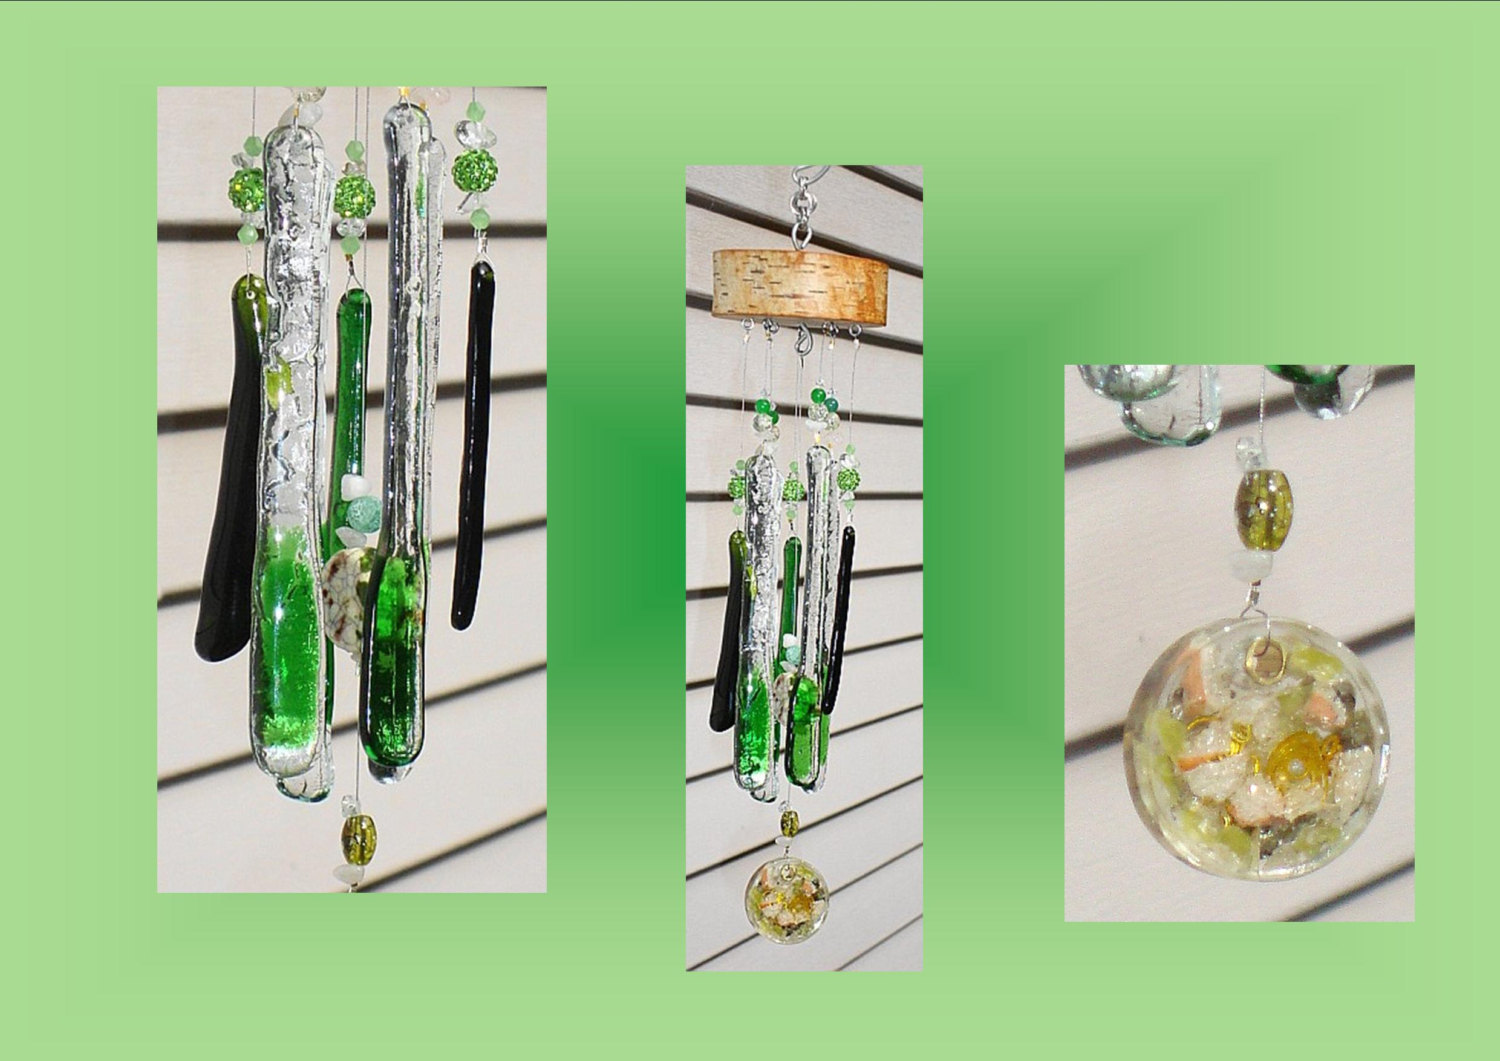 Glass Windchimes Green Fused Glass Windchime Orgone Windchime Garden Decor Stained Glass Windchime Mobile Window Suncatchers